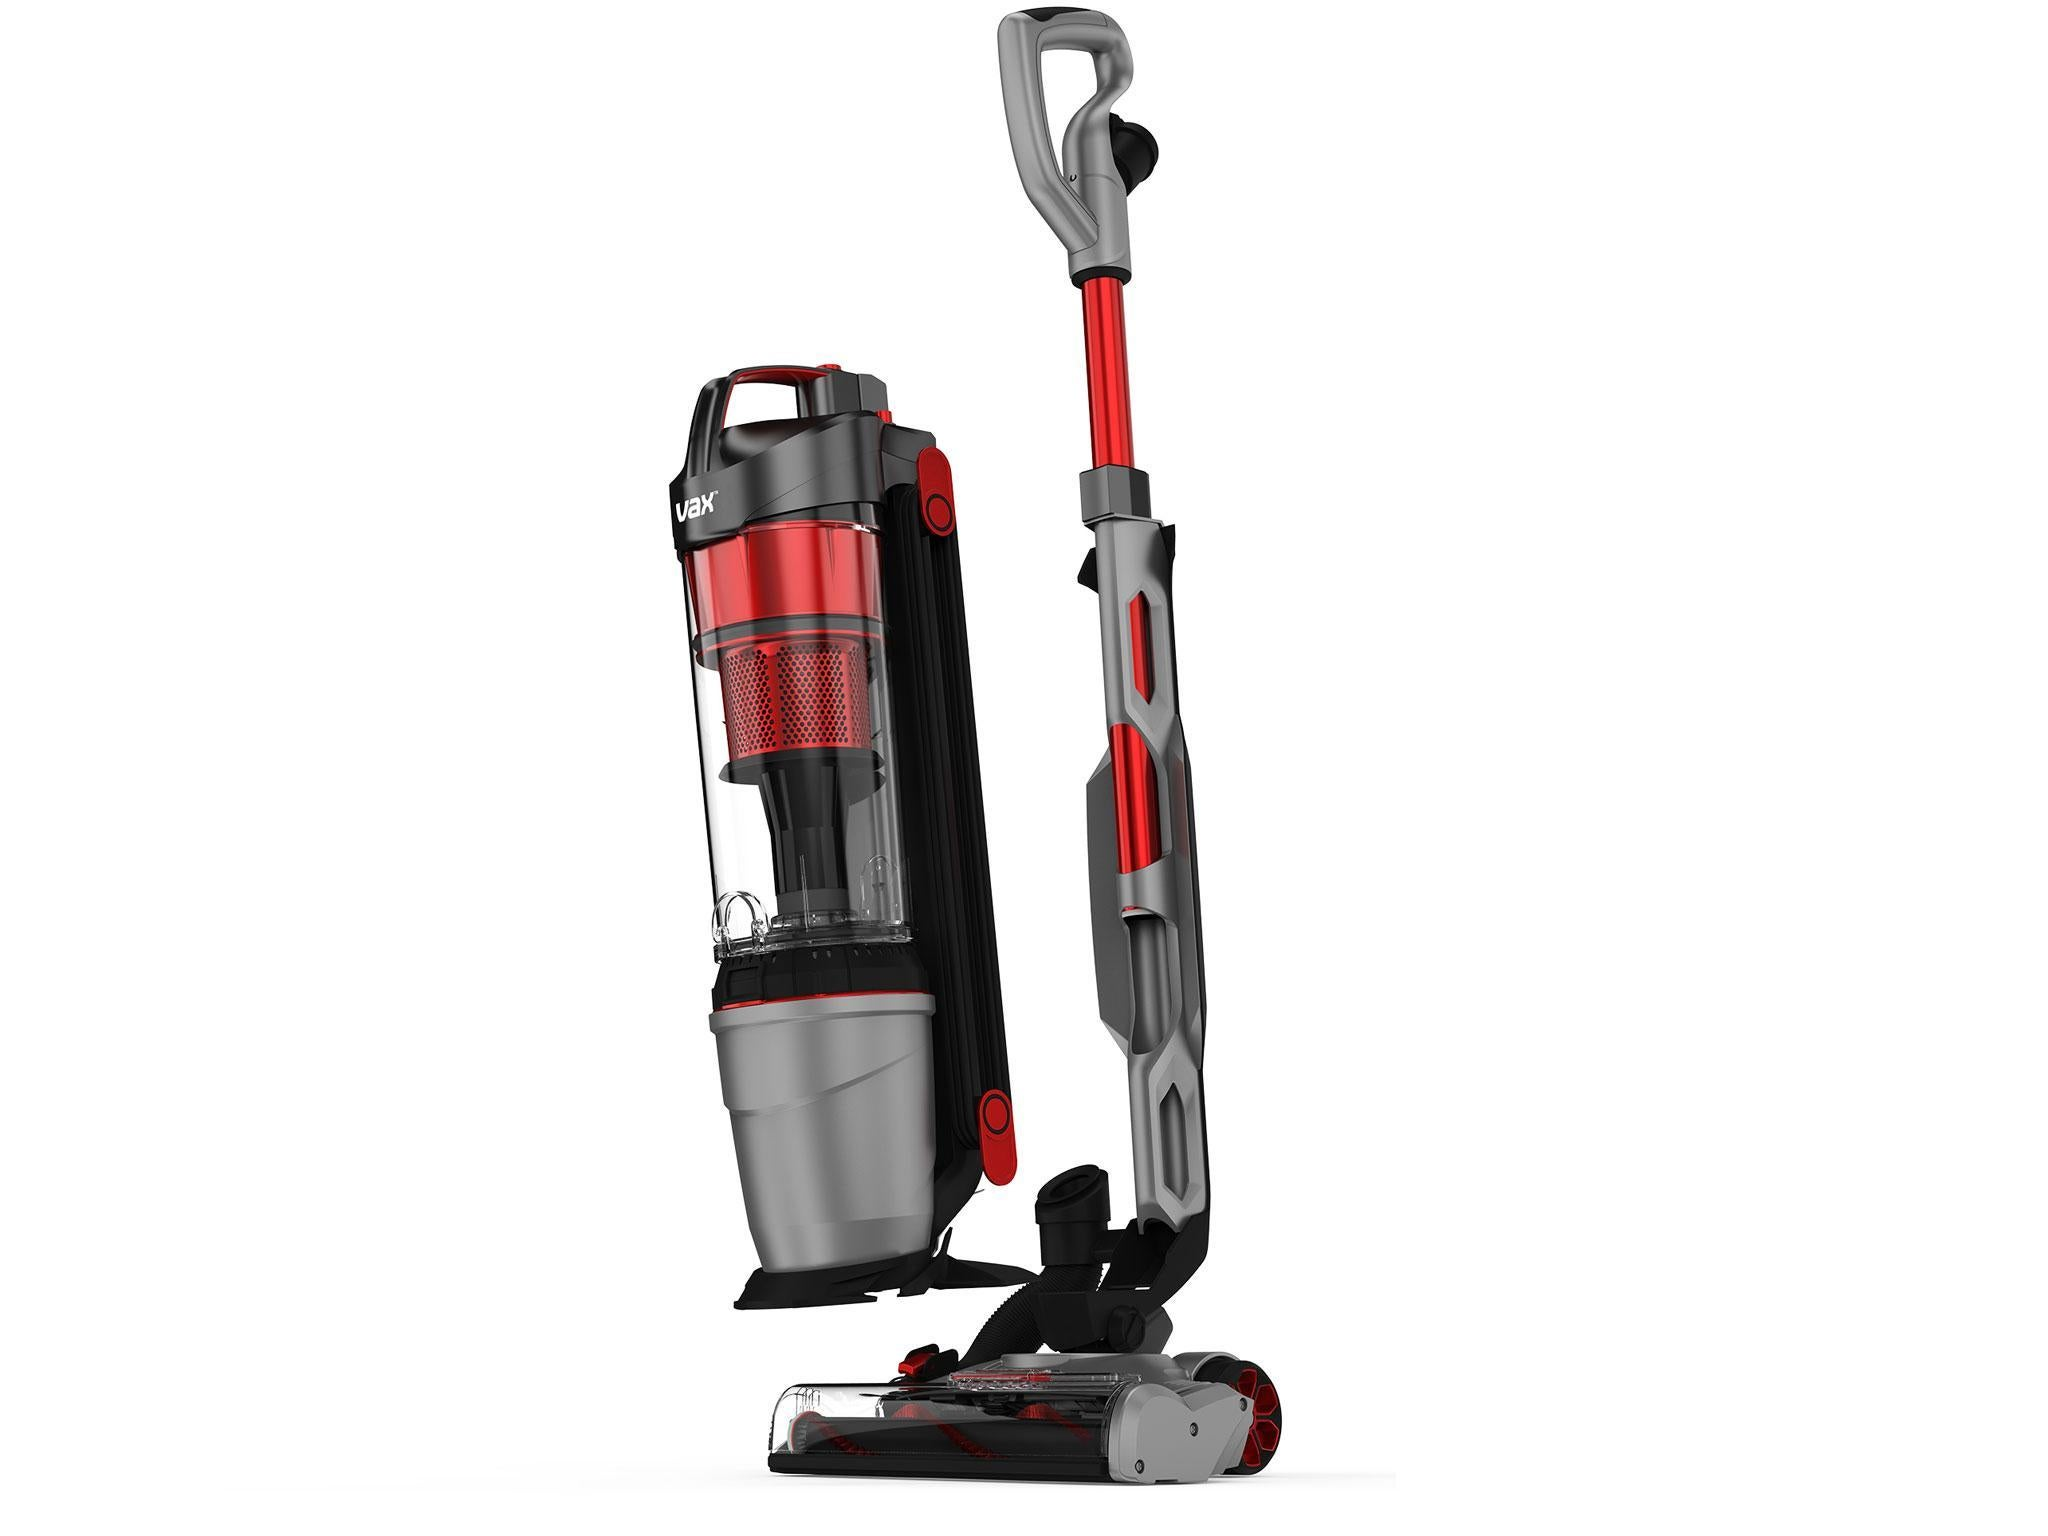 11 Best Corded Vacuum Cleaners The Independent Wd4 Mv 4 Premium Cleaner Wet And Dry Karcher This Is Great Value For Money As Middle Pops Out Works A Cordless Model Cleaning Stairs Car